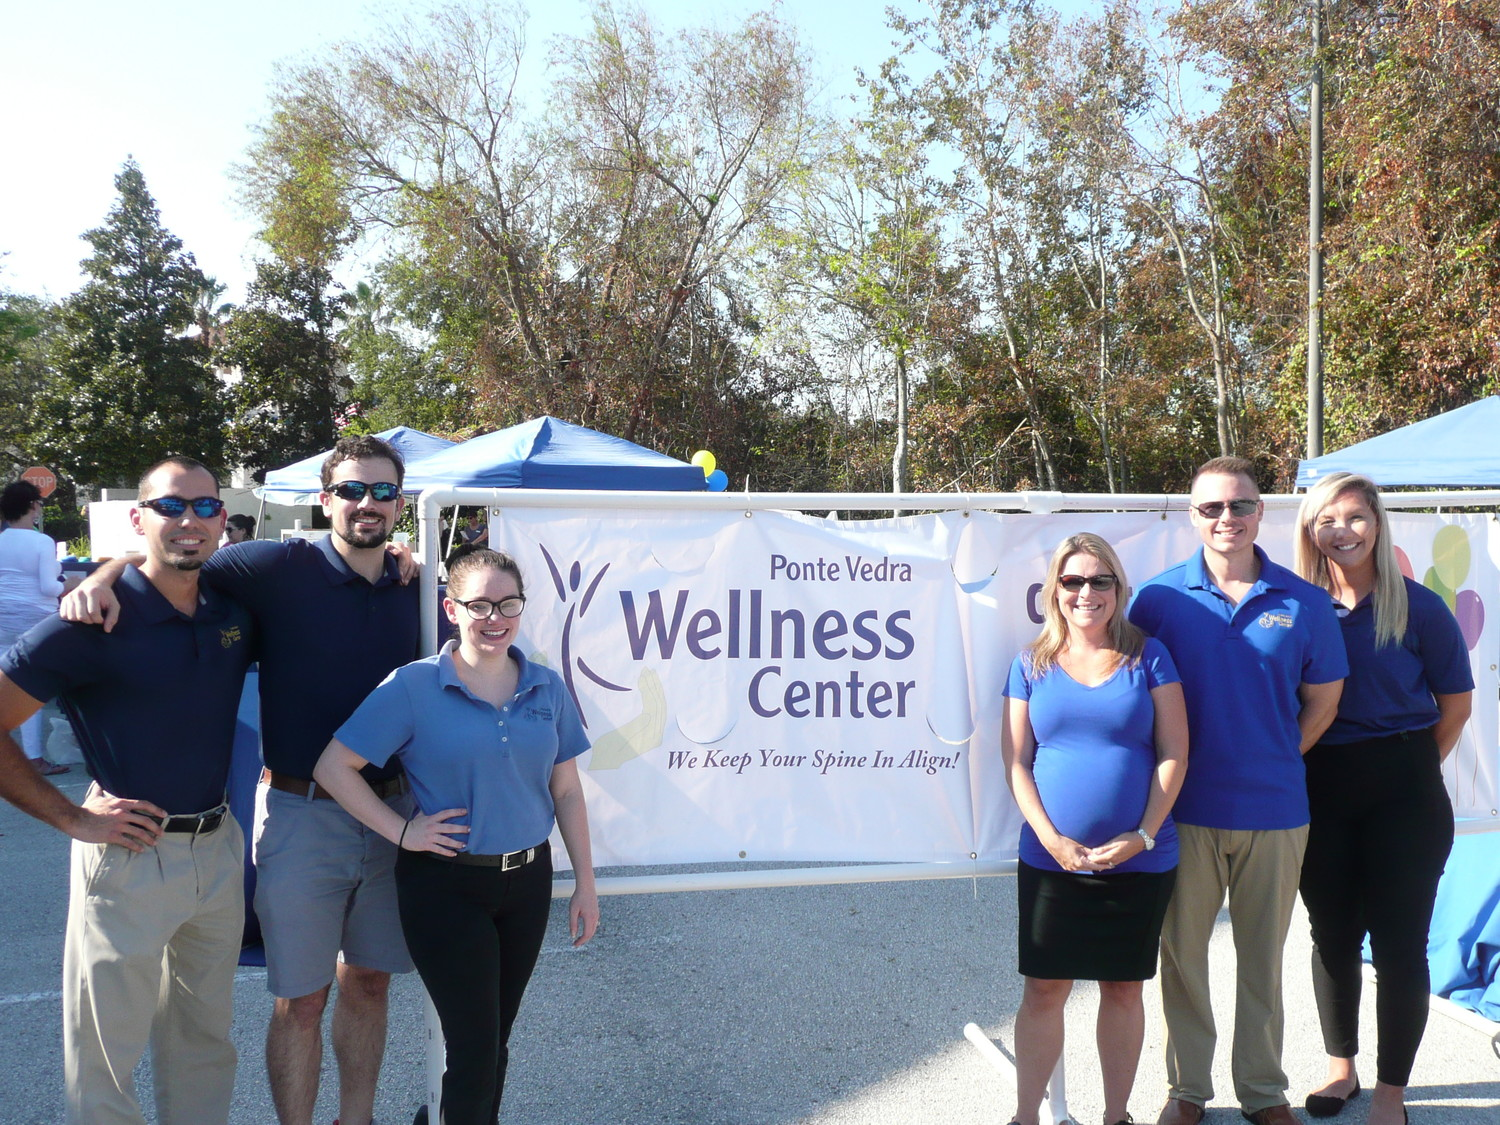 Daniel Tirado, Daniel Brauch, Marissa Daniels, Ponte Vedra Wellness Center owner Dr. Erika Hamer, Dr. Casey Means and Lejla Karic gather at the wellness fair and anniversary party.